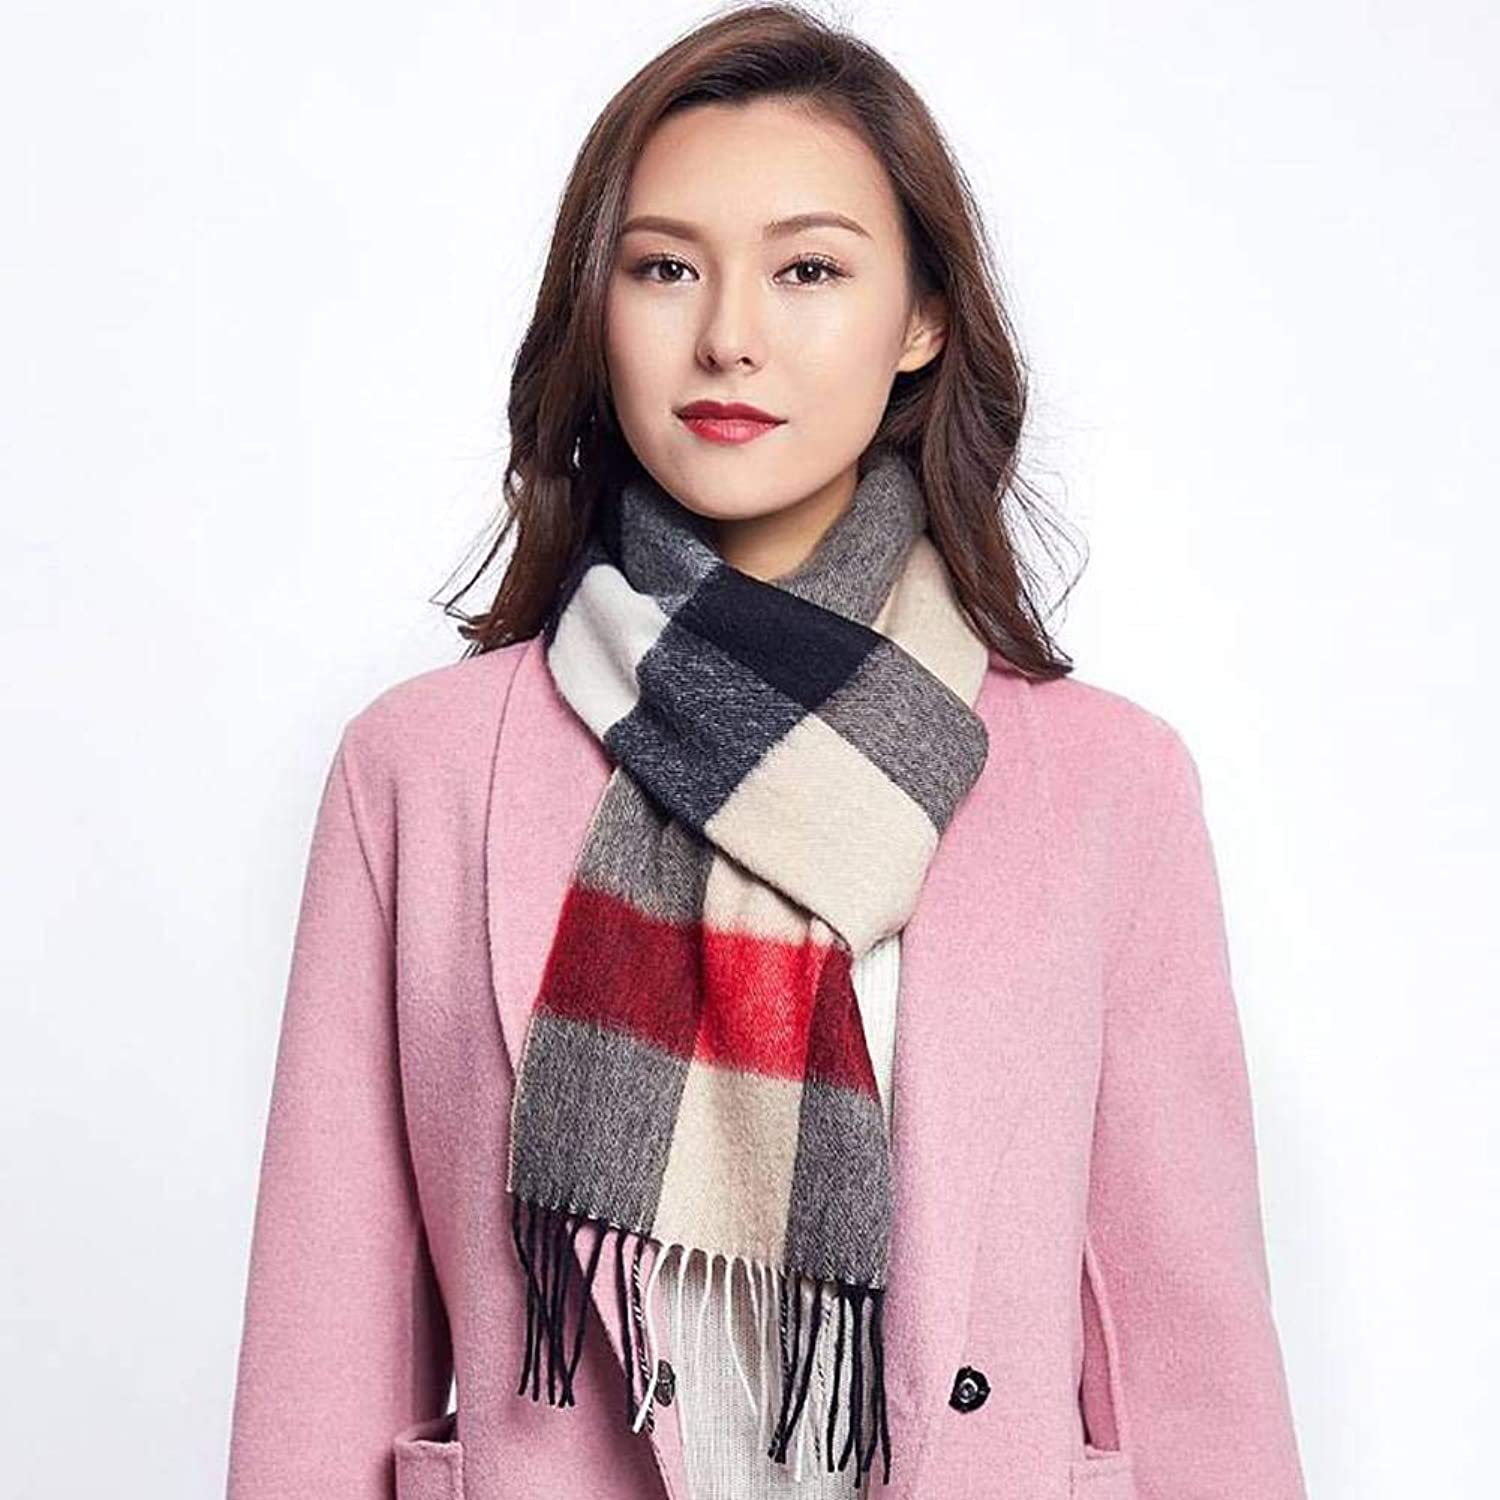 WJL Sweet Plaid Imitation Cgreymere Women Warm Geometry Scarf Autumn and Winter Outdoor MultiFunctional Fgreyion Trend Wild Warm Shawl Scarf Gift